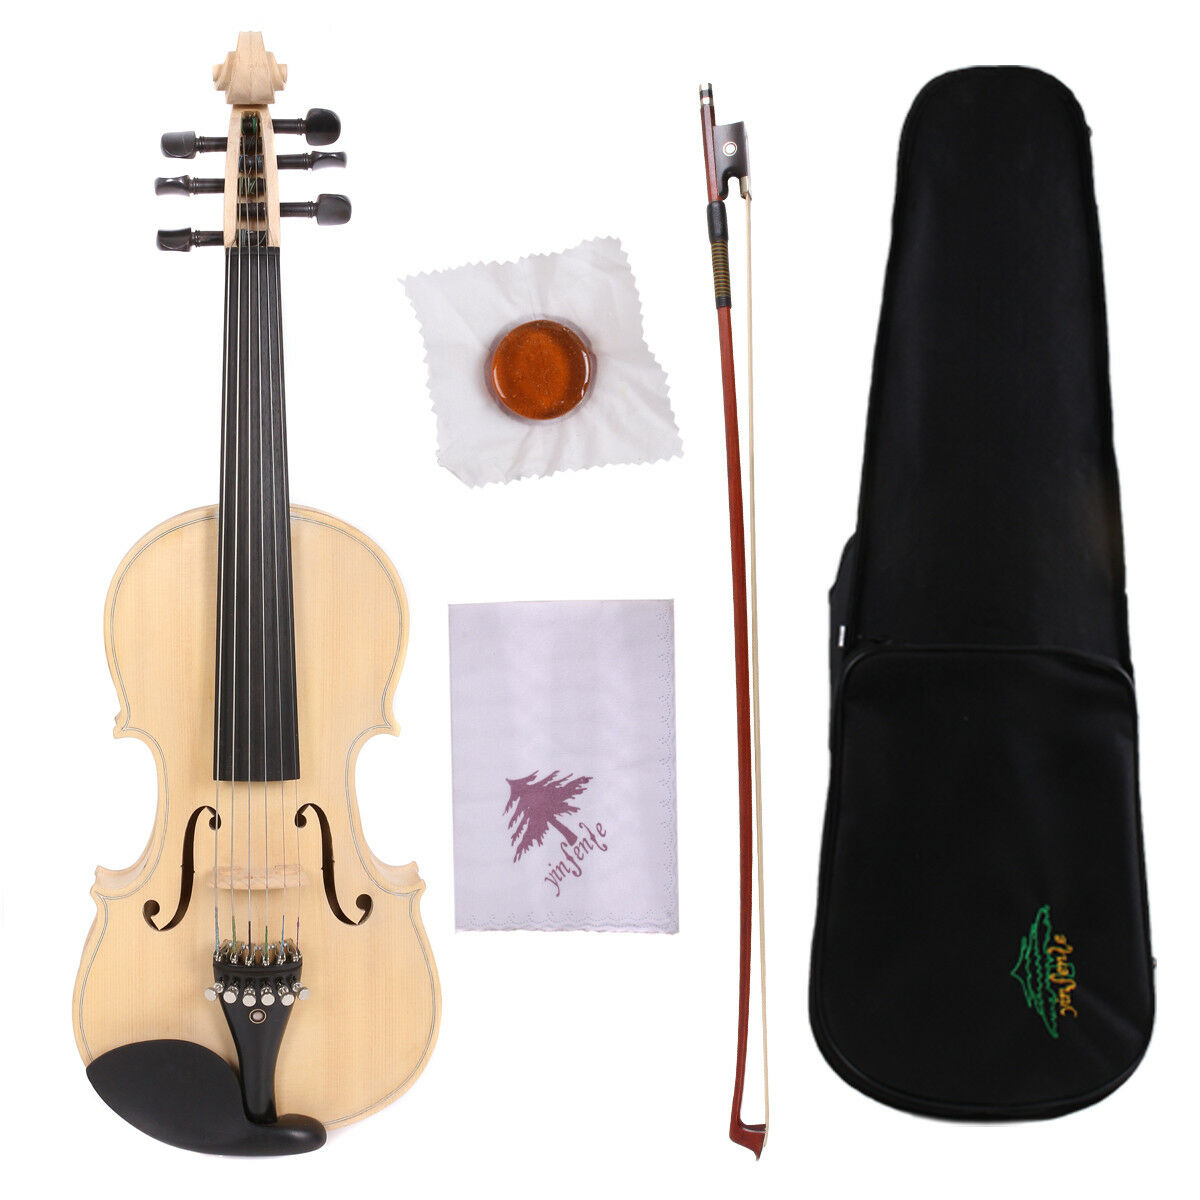 4 4 Violin 6 strings handmade Natural color Fiddle free Case Bow Rosin No paint